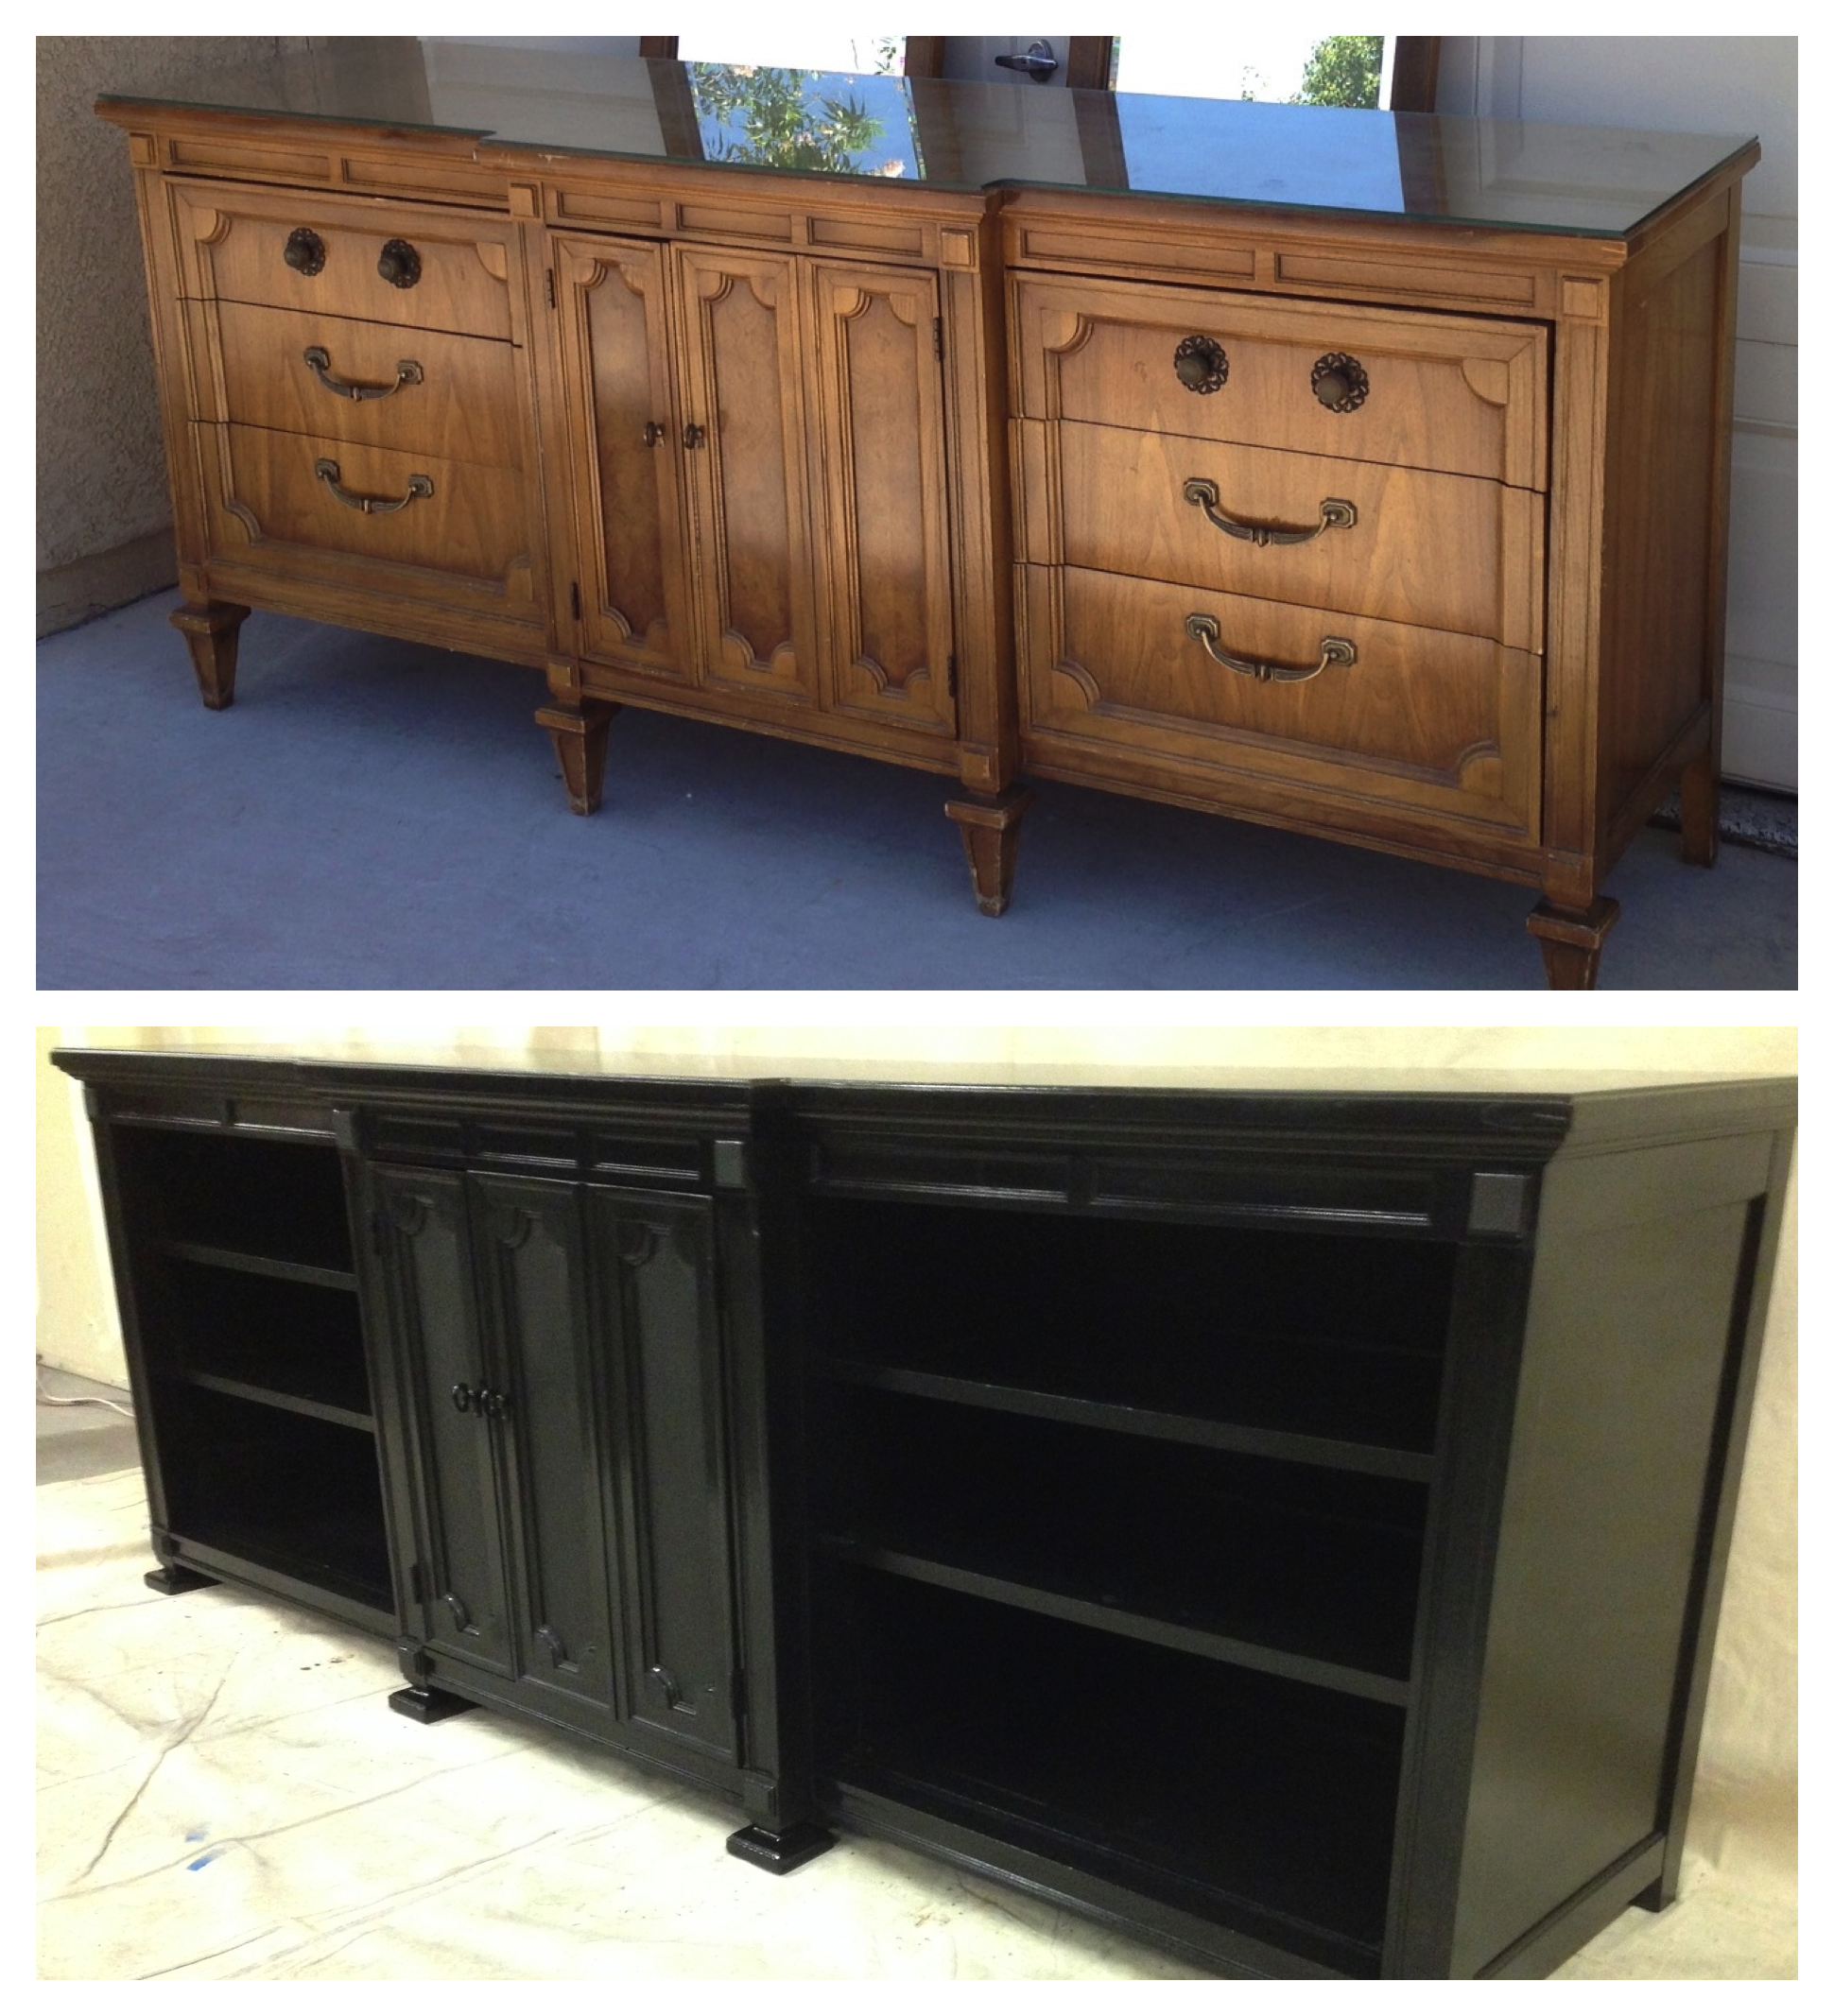 Converted 9 Drawer Dresser Into Tv Stand Media Unit Www Facebook Com Vintagekeyantiques Vintage Shabby Refinished Painted Before And After